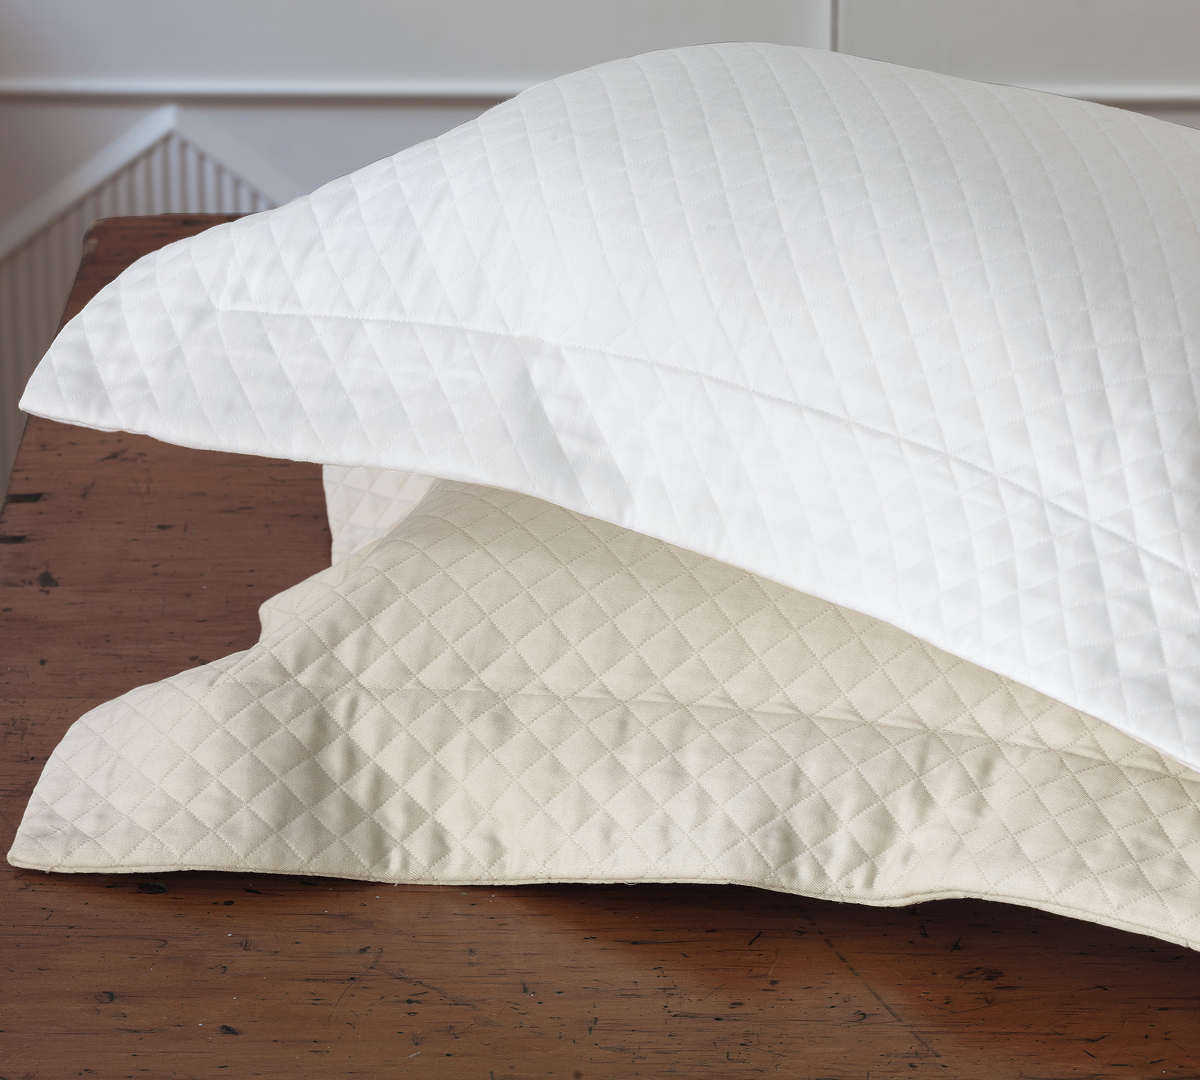 Uuu Nancy Koltes Linens Madrid Coverlet And Shams And Dust